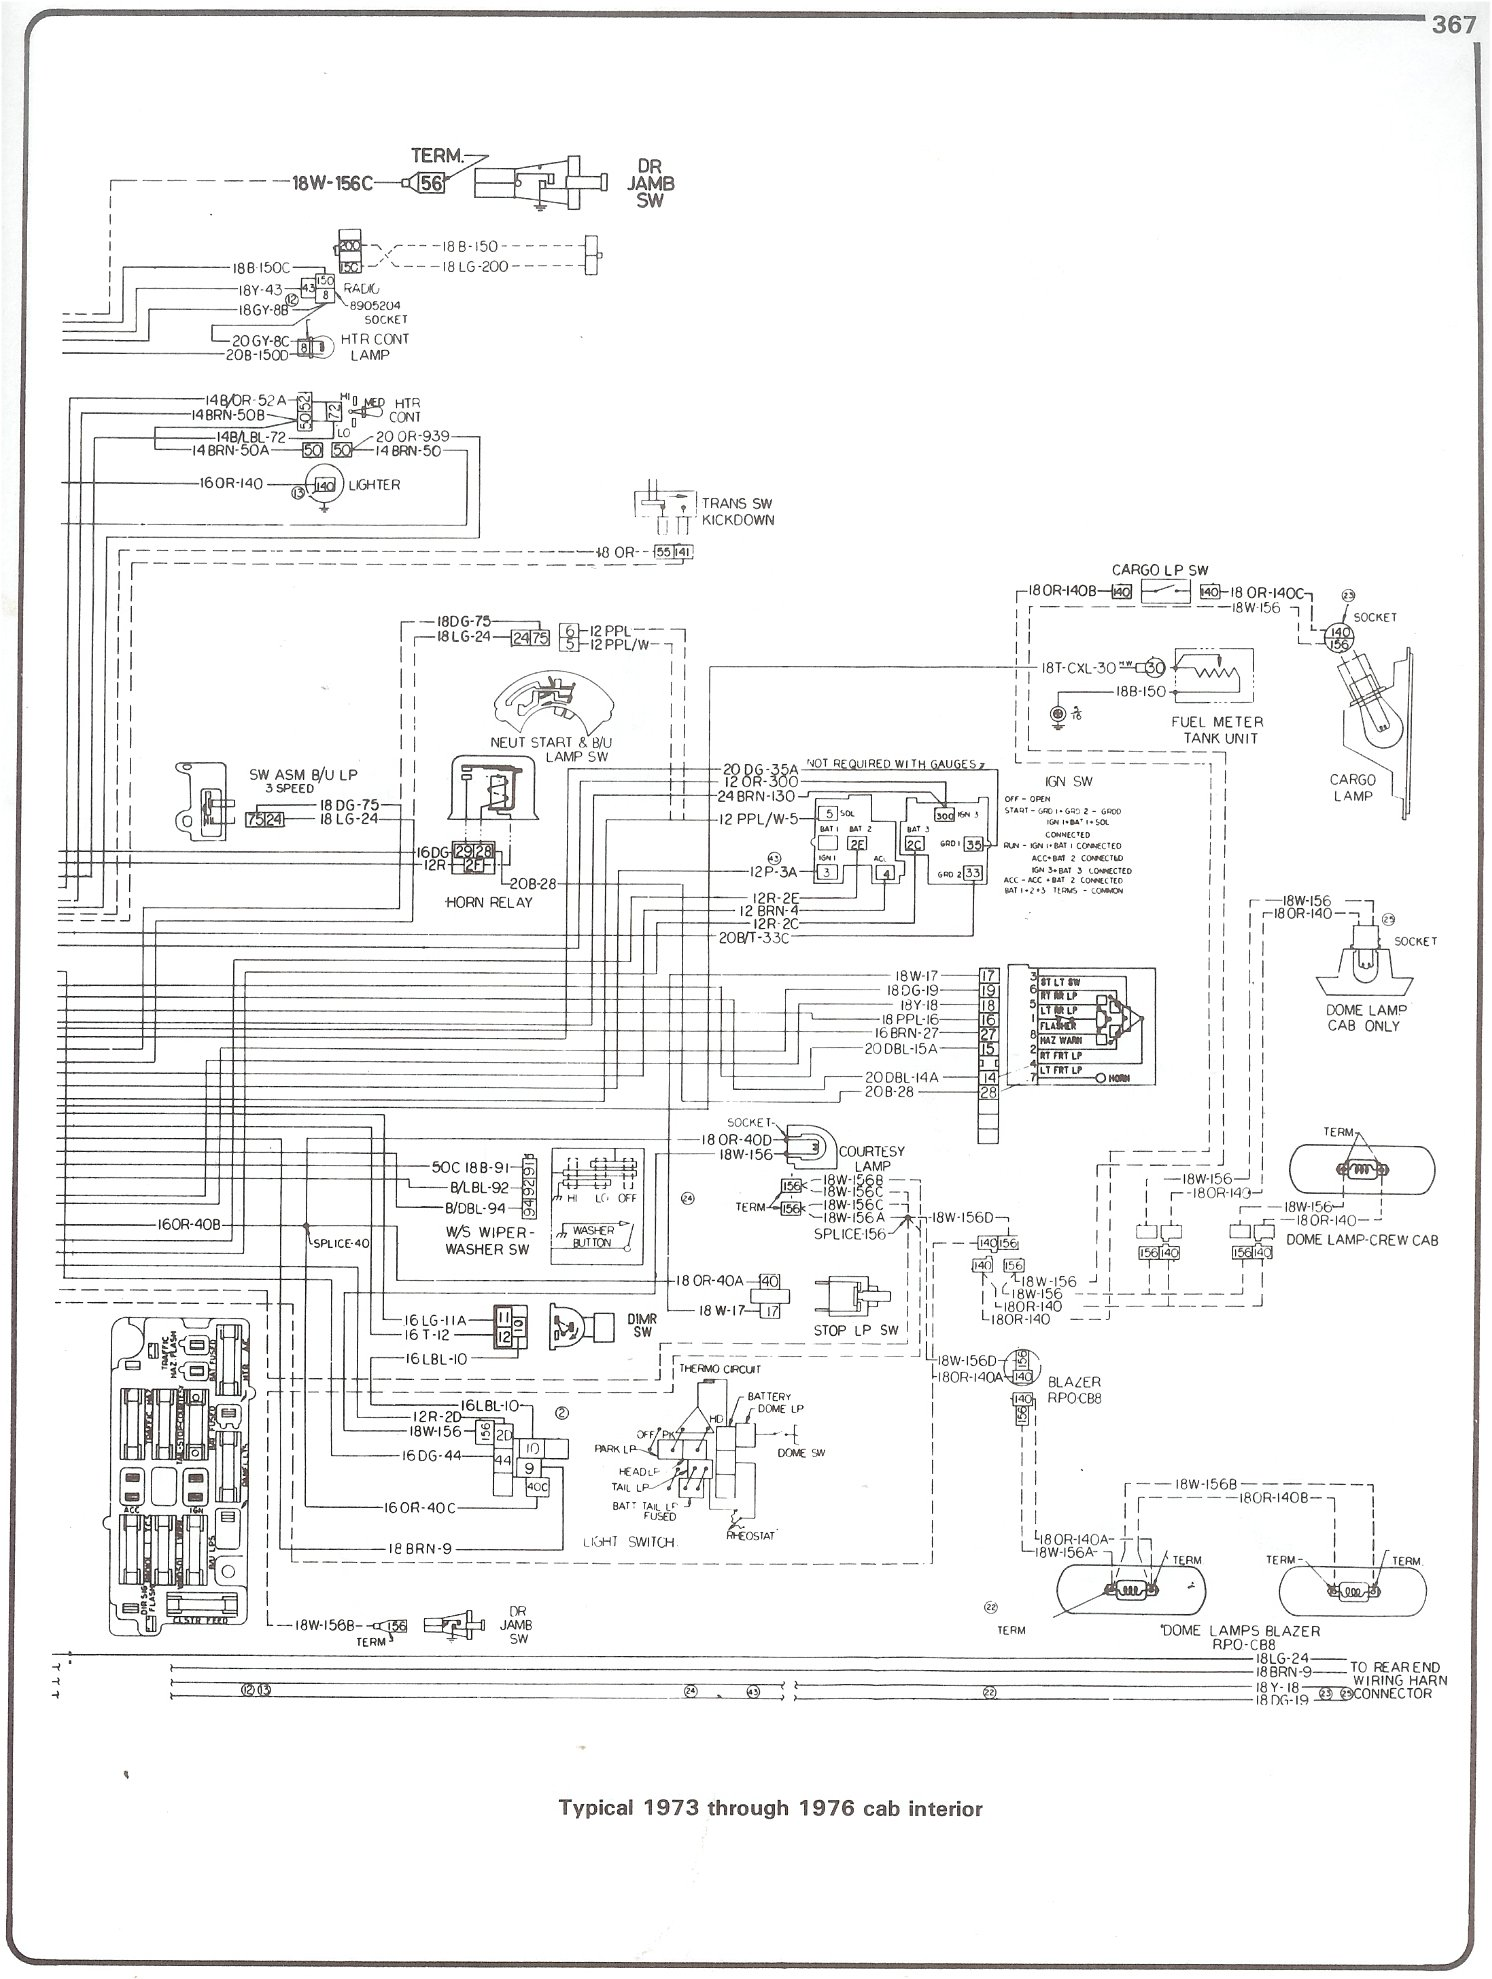 Complete 73-87 Wiring Diagrams on headlight switch wiring diagram, 97 s10 ignition switch diagram, s10 electrical diagram, 88 s10 engine, 88 s10 air cleaner, 88 s10 suspension, chevrolet s10 engine diagram, 88 s10 fuel gauge, 88 s10 frame, 88 s10 seats, 88 s10 parts, 88 s10 radiator, 88 s10 wheels, 88 s10 air conditioning,